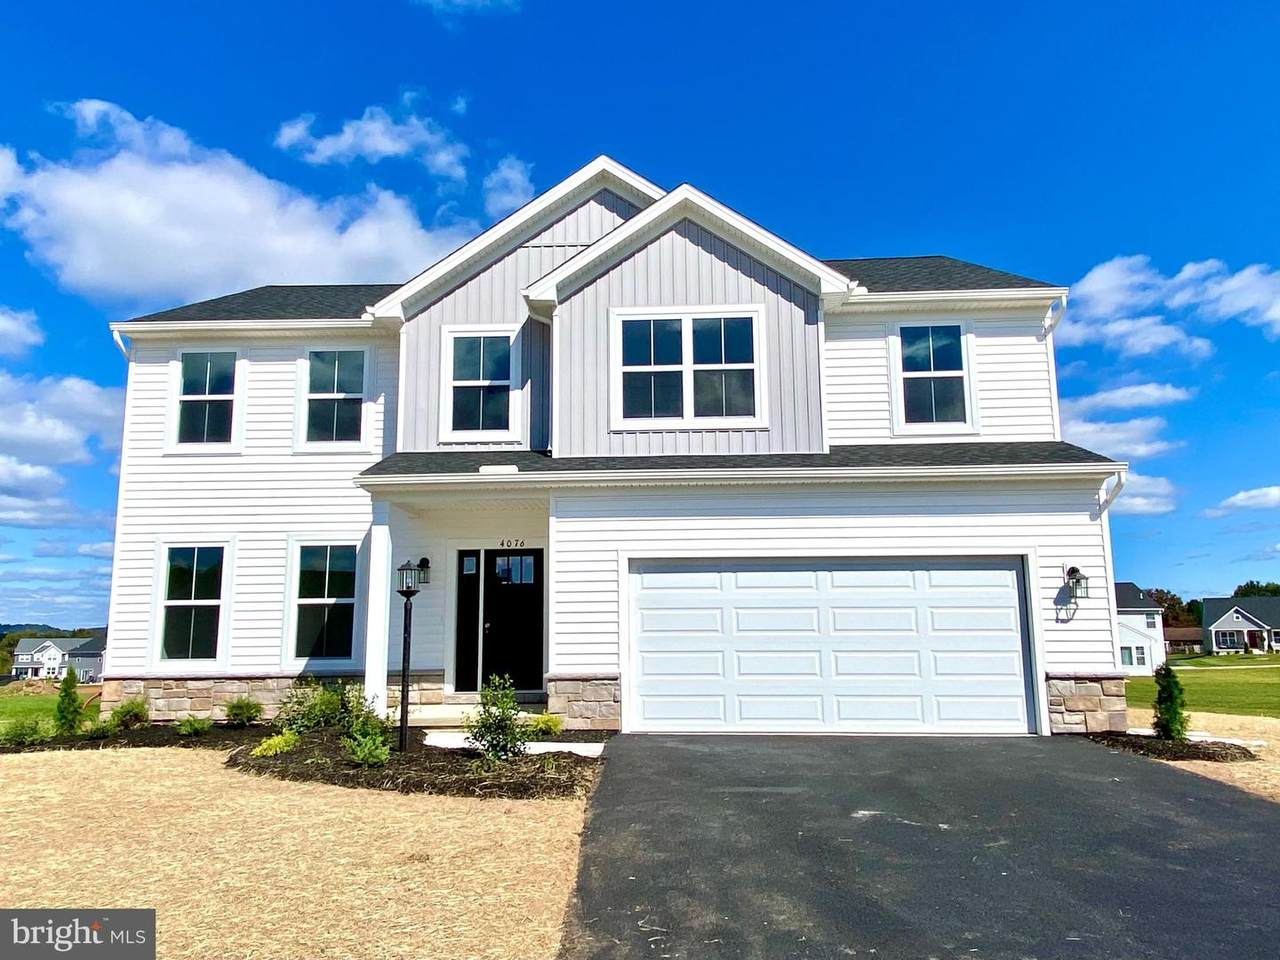 LOT #110 4076 Country Drive - Photo 1